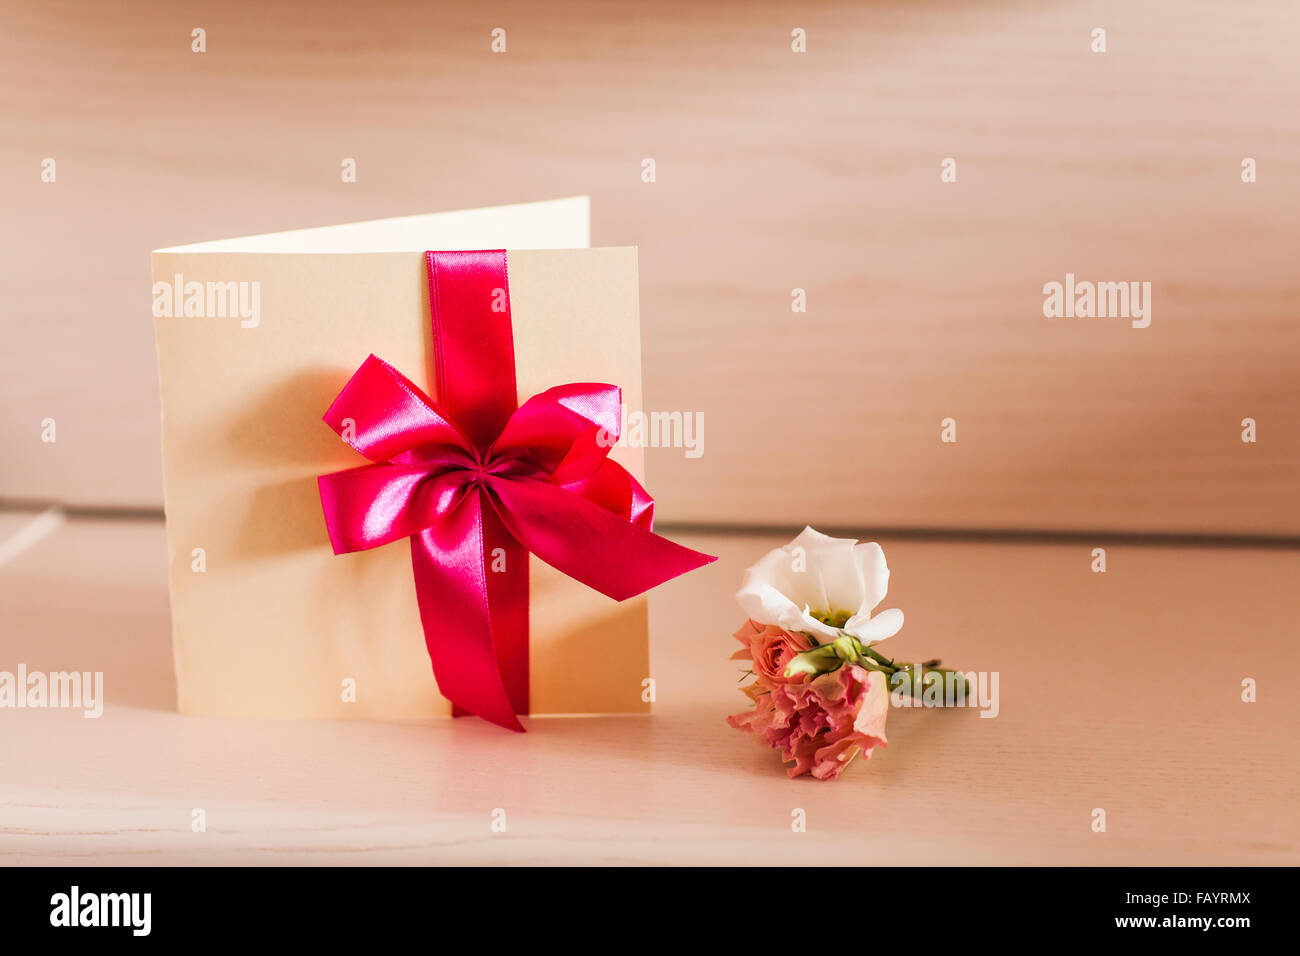 Bow Calla Lily Stock Photos & Bow Calla Lily Stock Images - Alamy